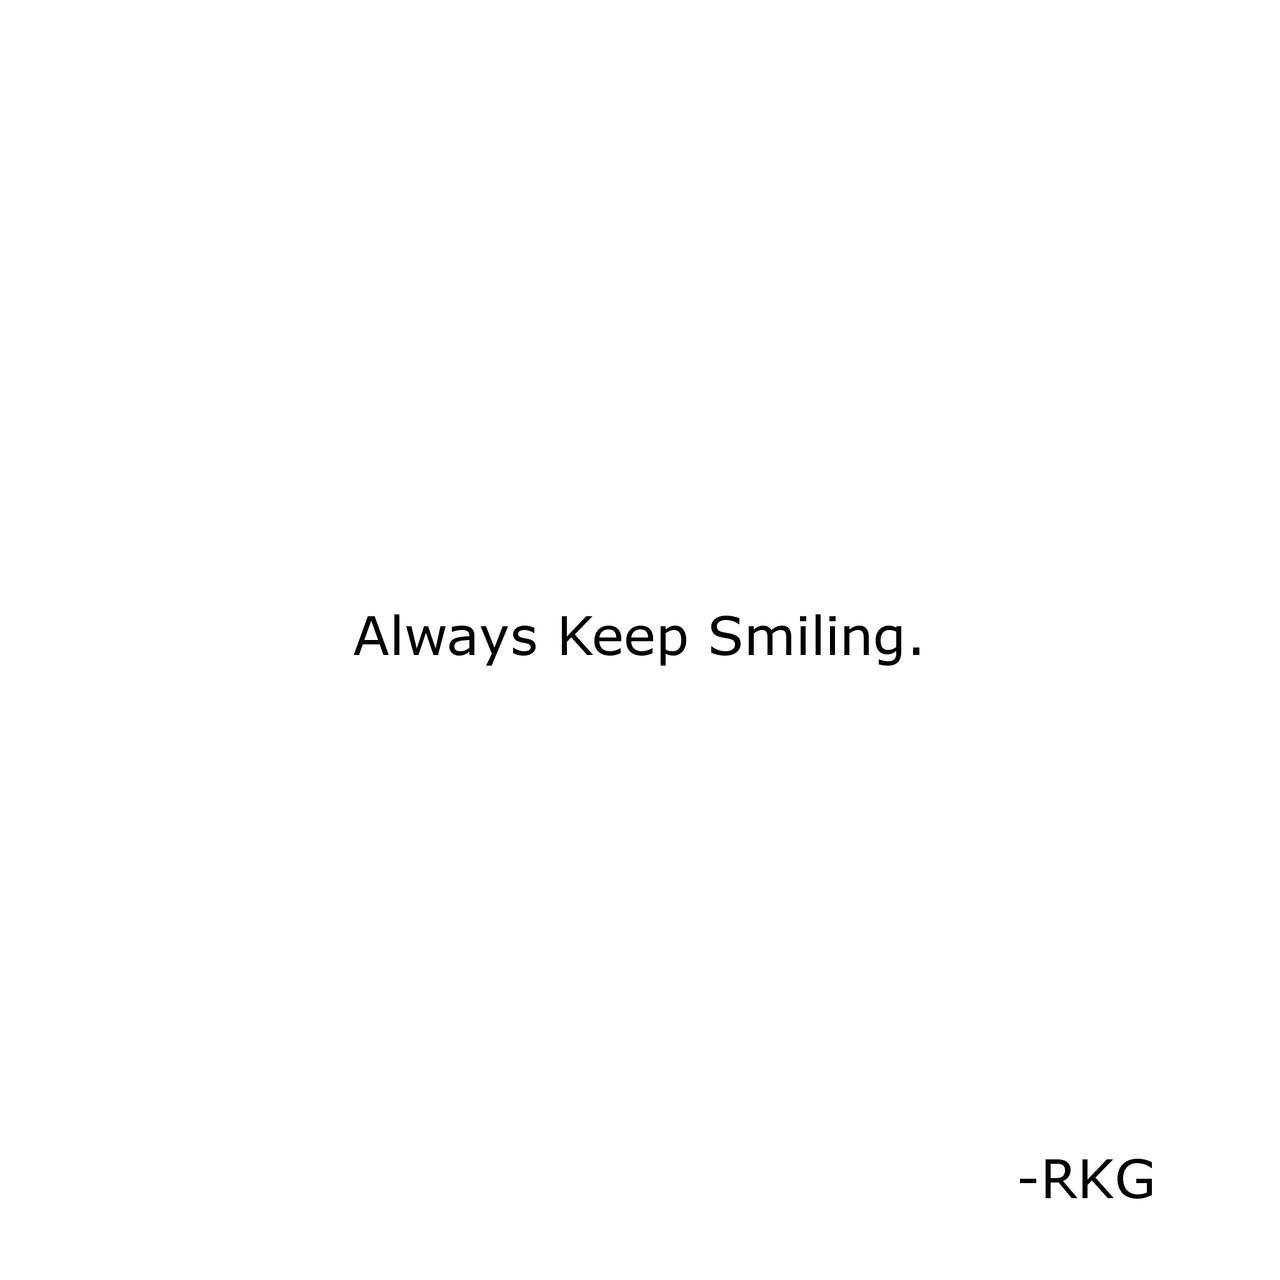 -No matter what happens remember your smile can change anything keep smilling always and have faith in Yourself (RKG)..